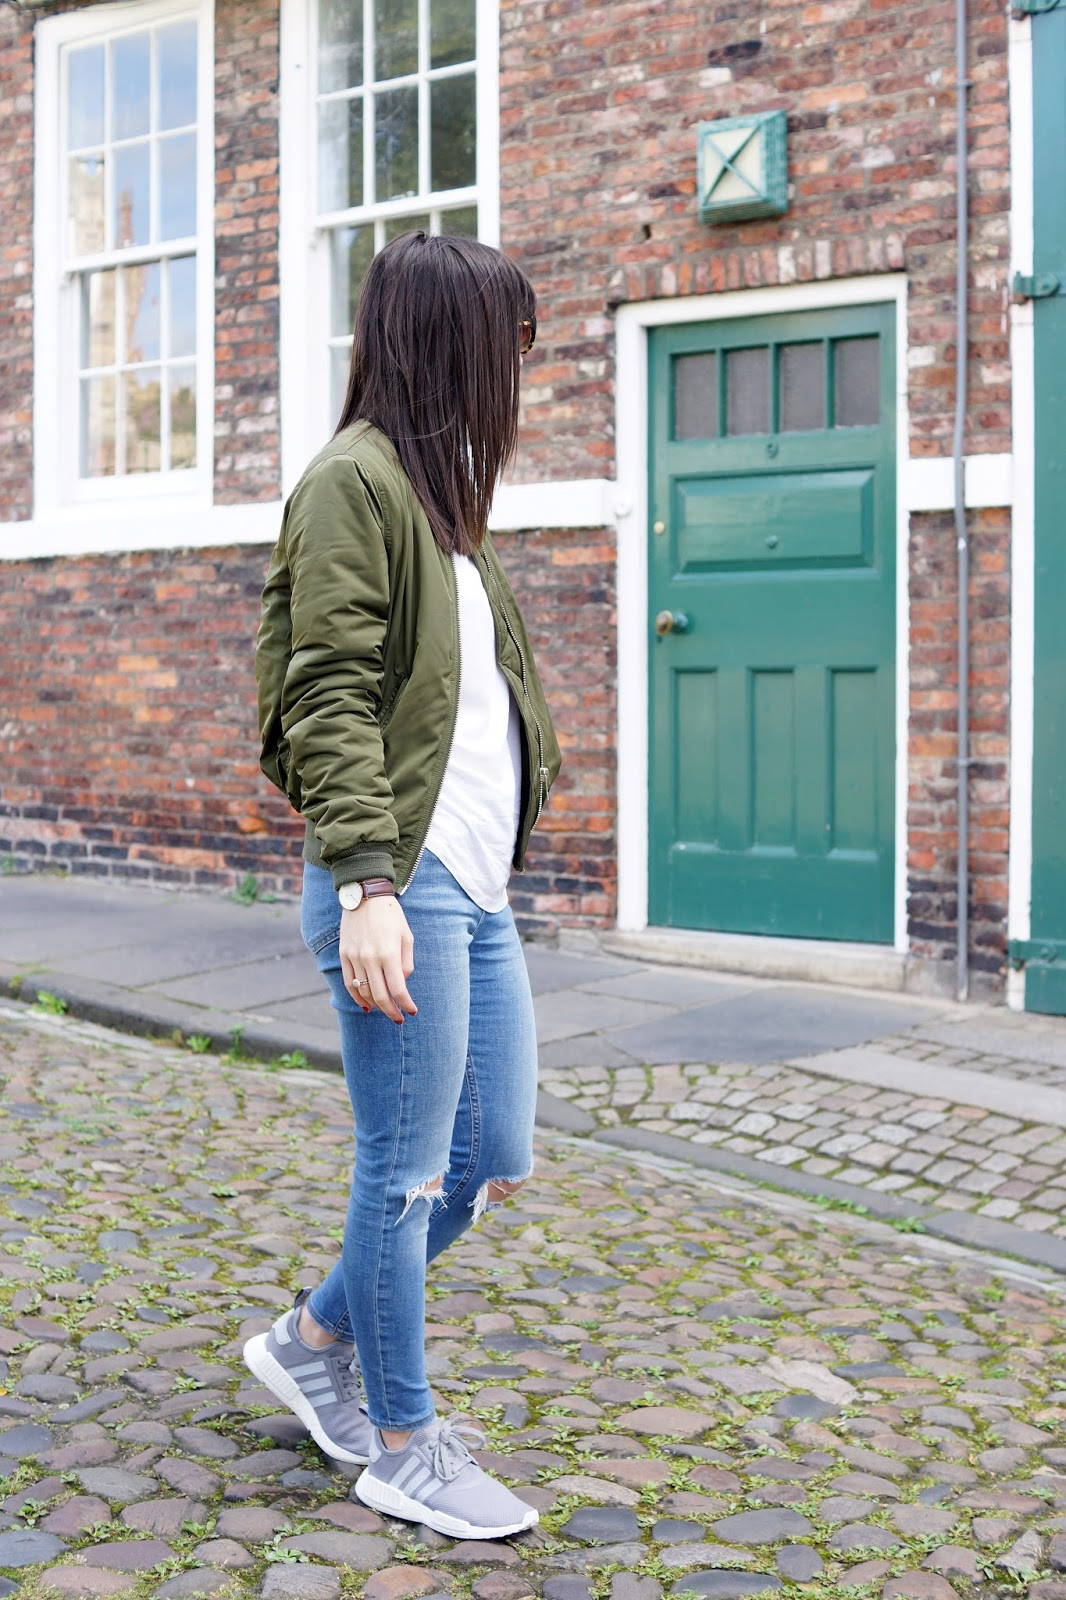 Casual Weekend Sunday Outfit Personal Style Khaki Bomber Jacket Adidas NMDs Trainers